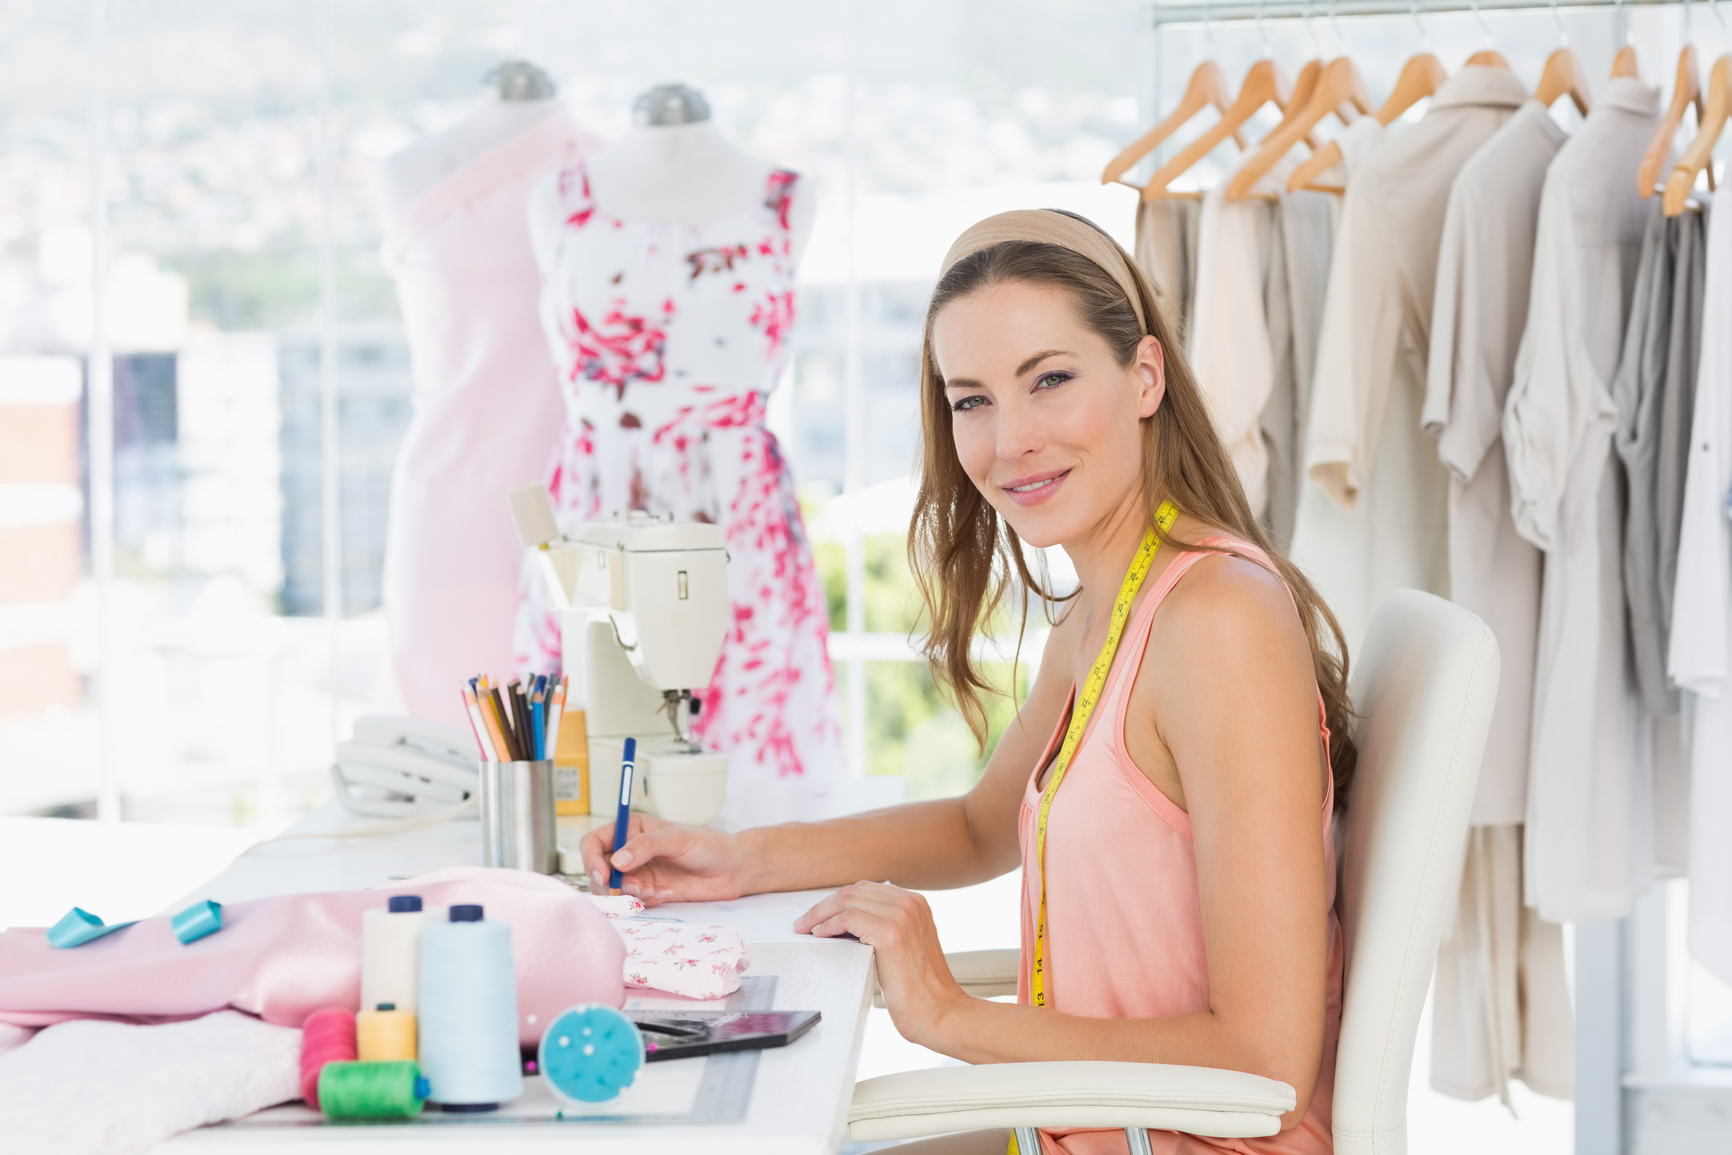 Beauty Fashion Job Training: Fashion Industry Jobs